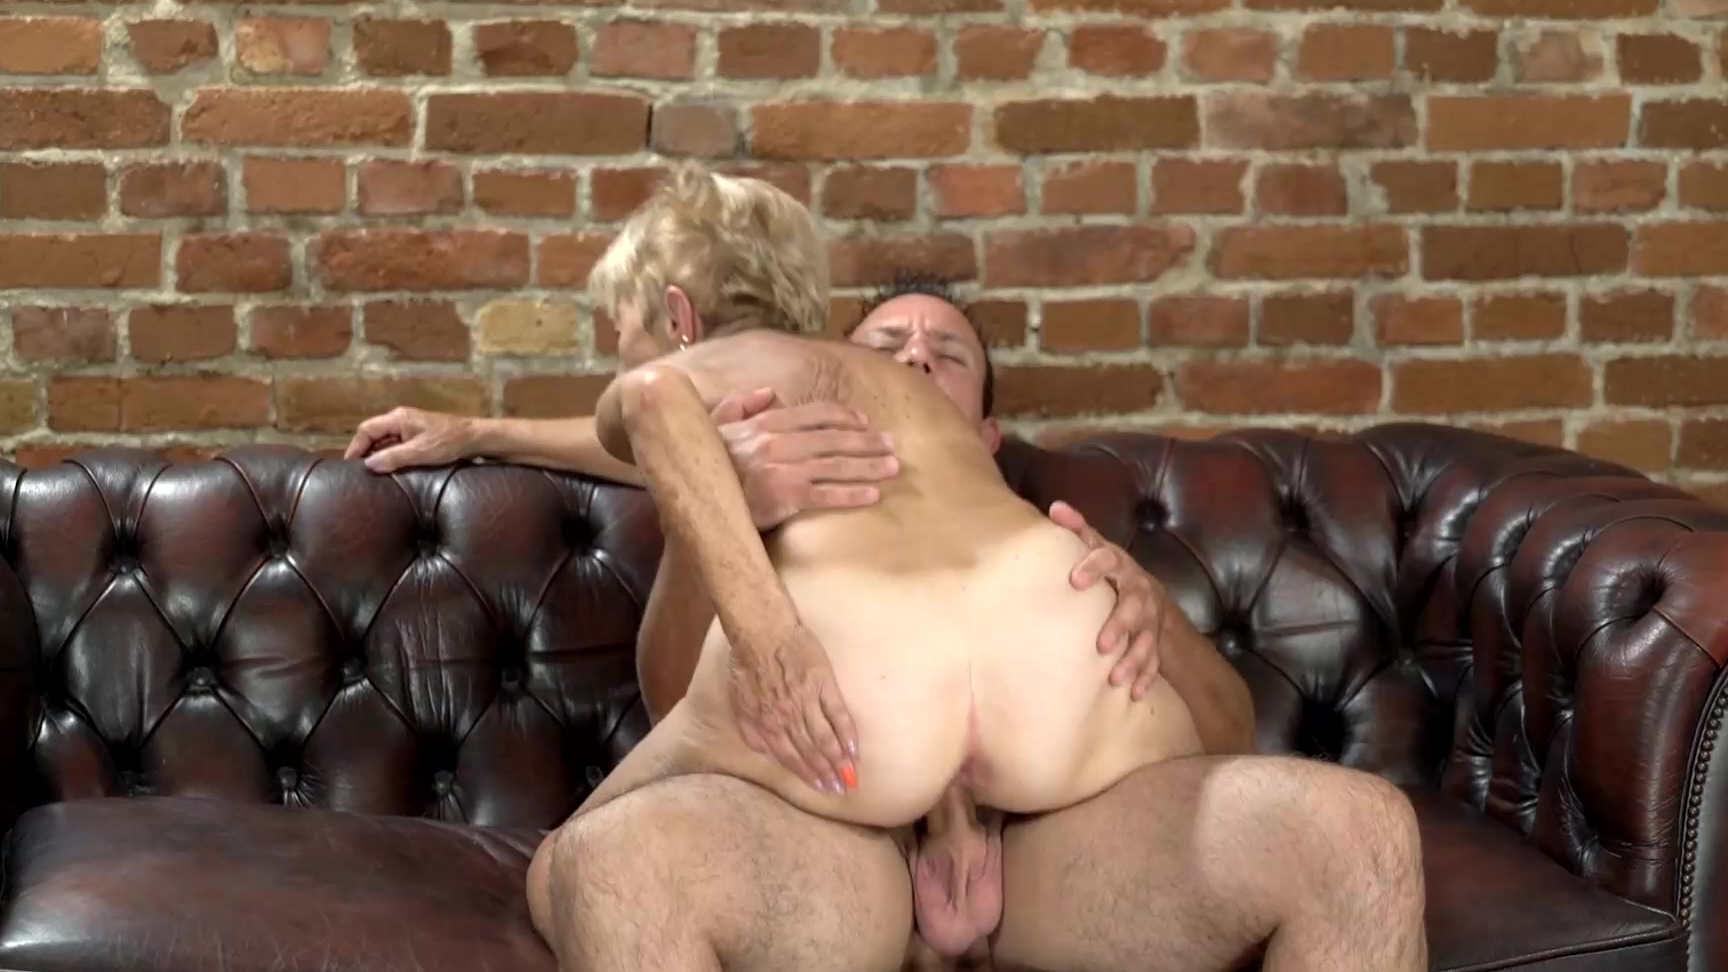 Lusty blondie want strong cock